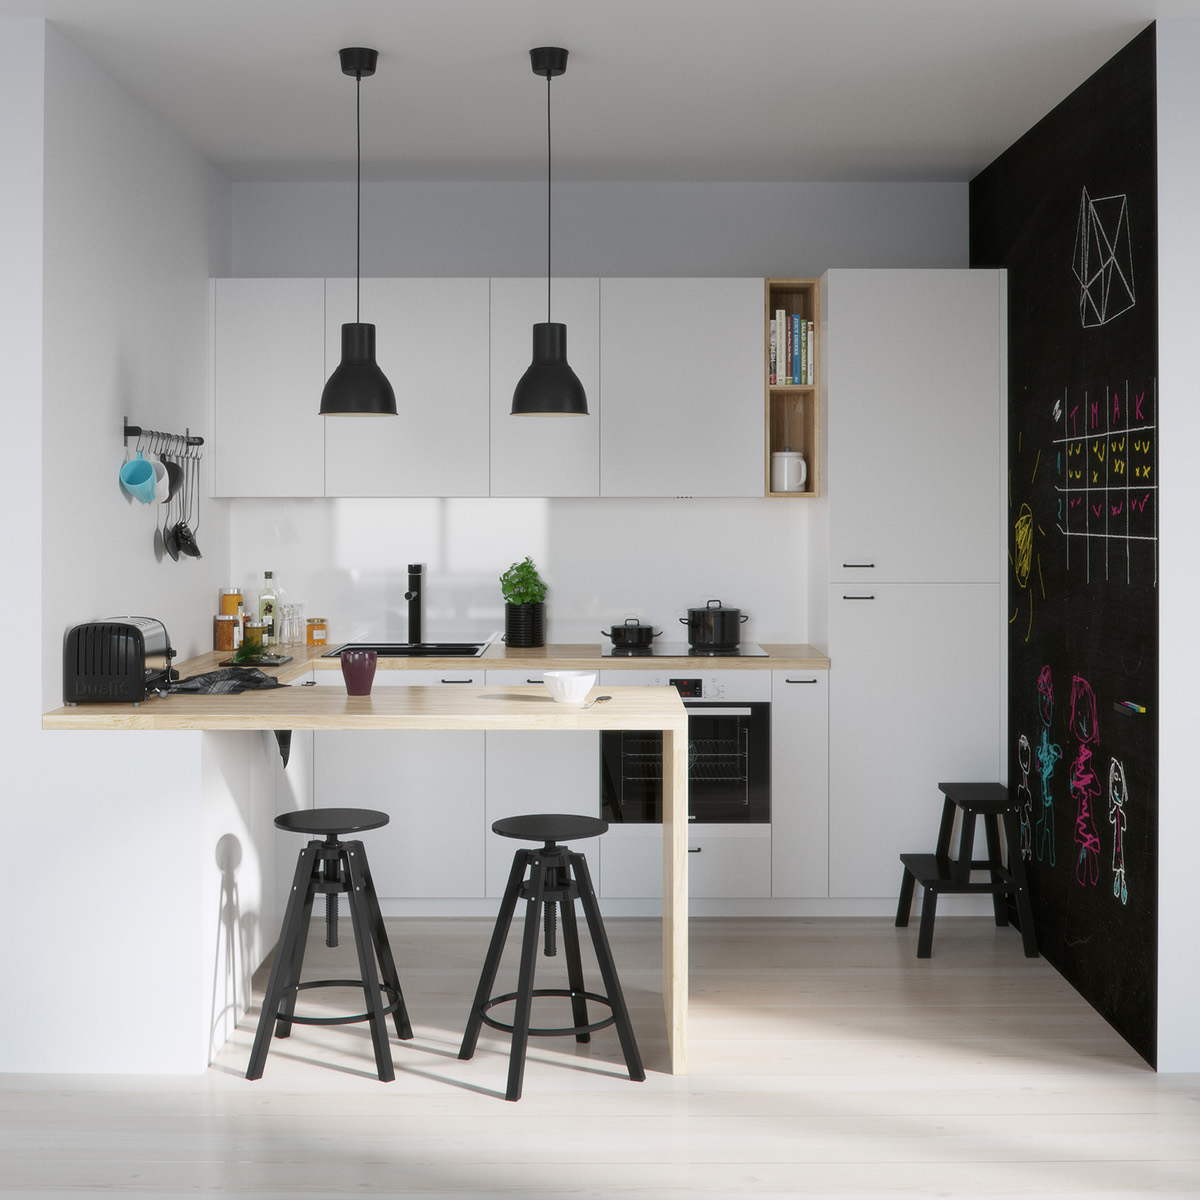 chic-black-and-white-kitchen